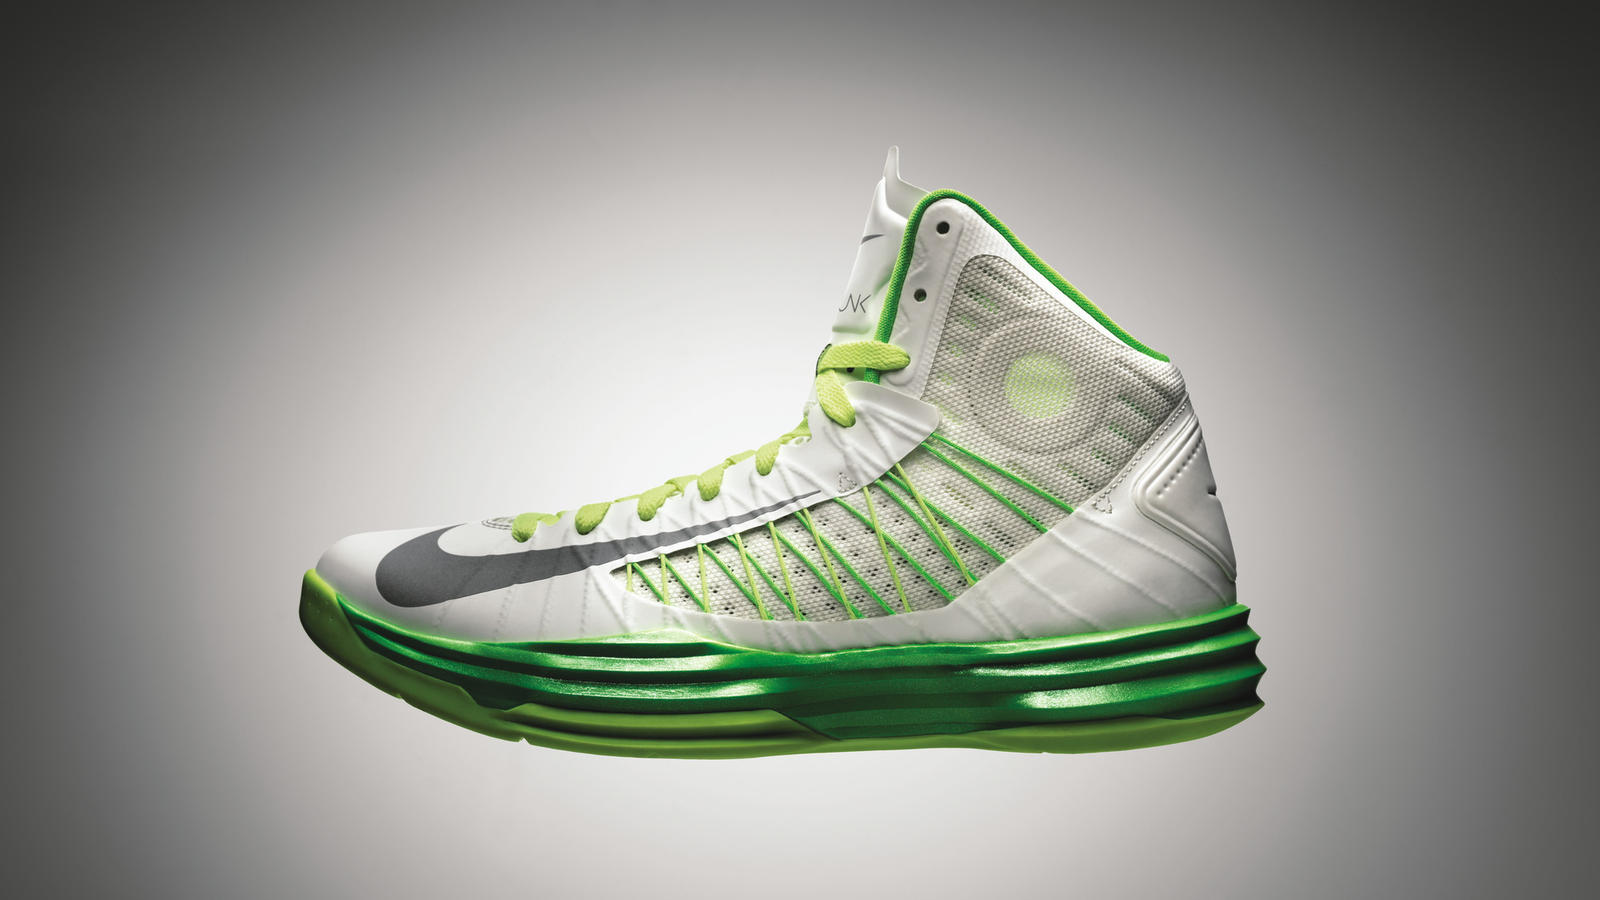 97d0640e86441 NIKE Lunarlon Collection delivers revolutionary cushioning system ...